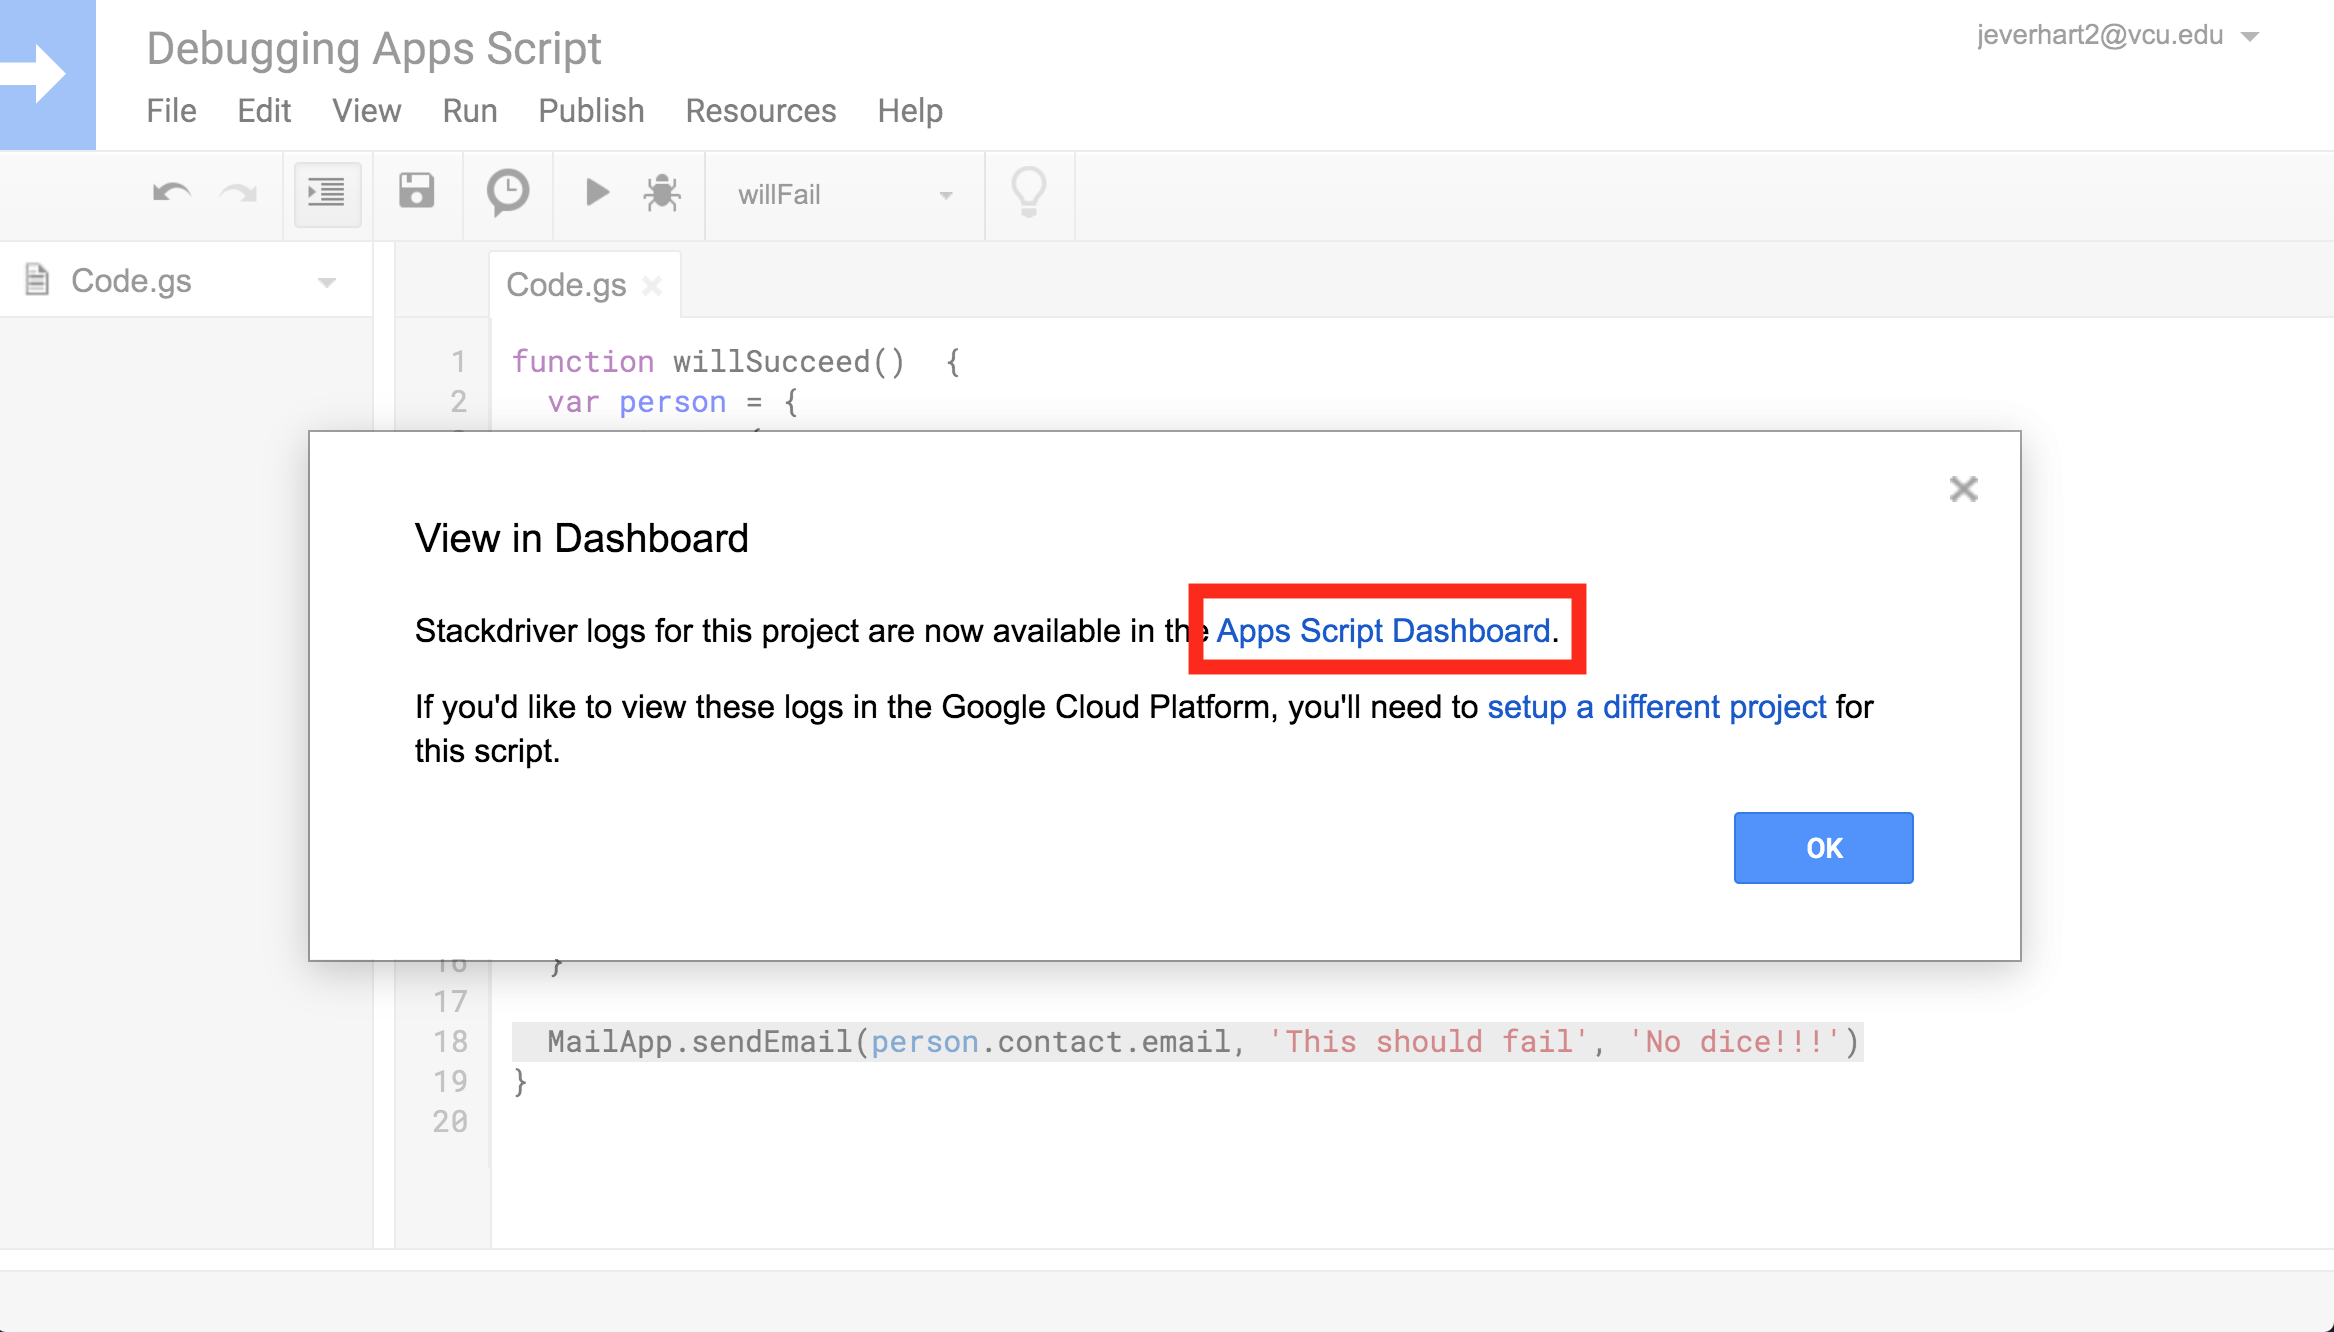 A screenshot of the modal used to open Stackdriver logging in the Google Apps Script dashboard